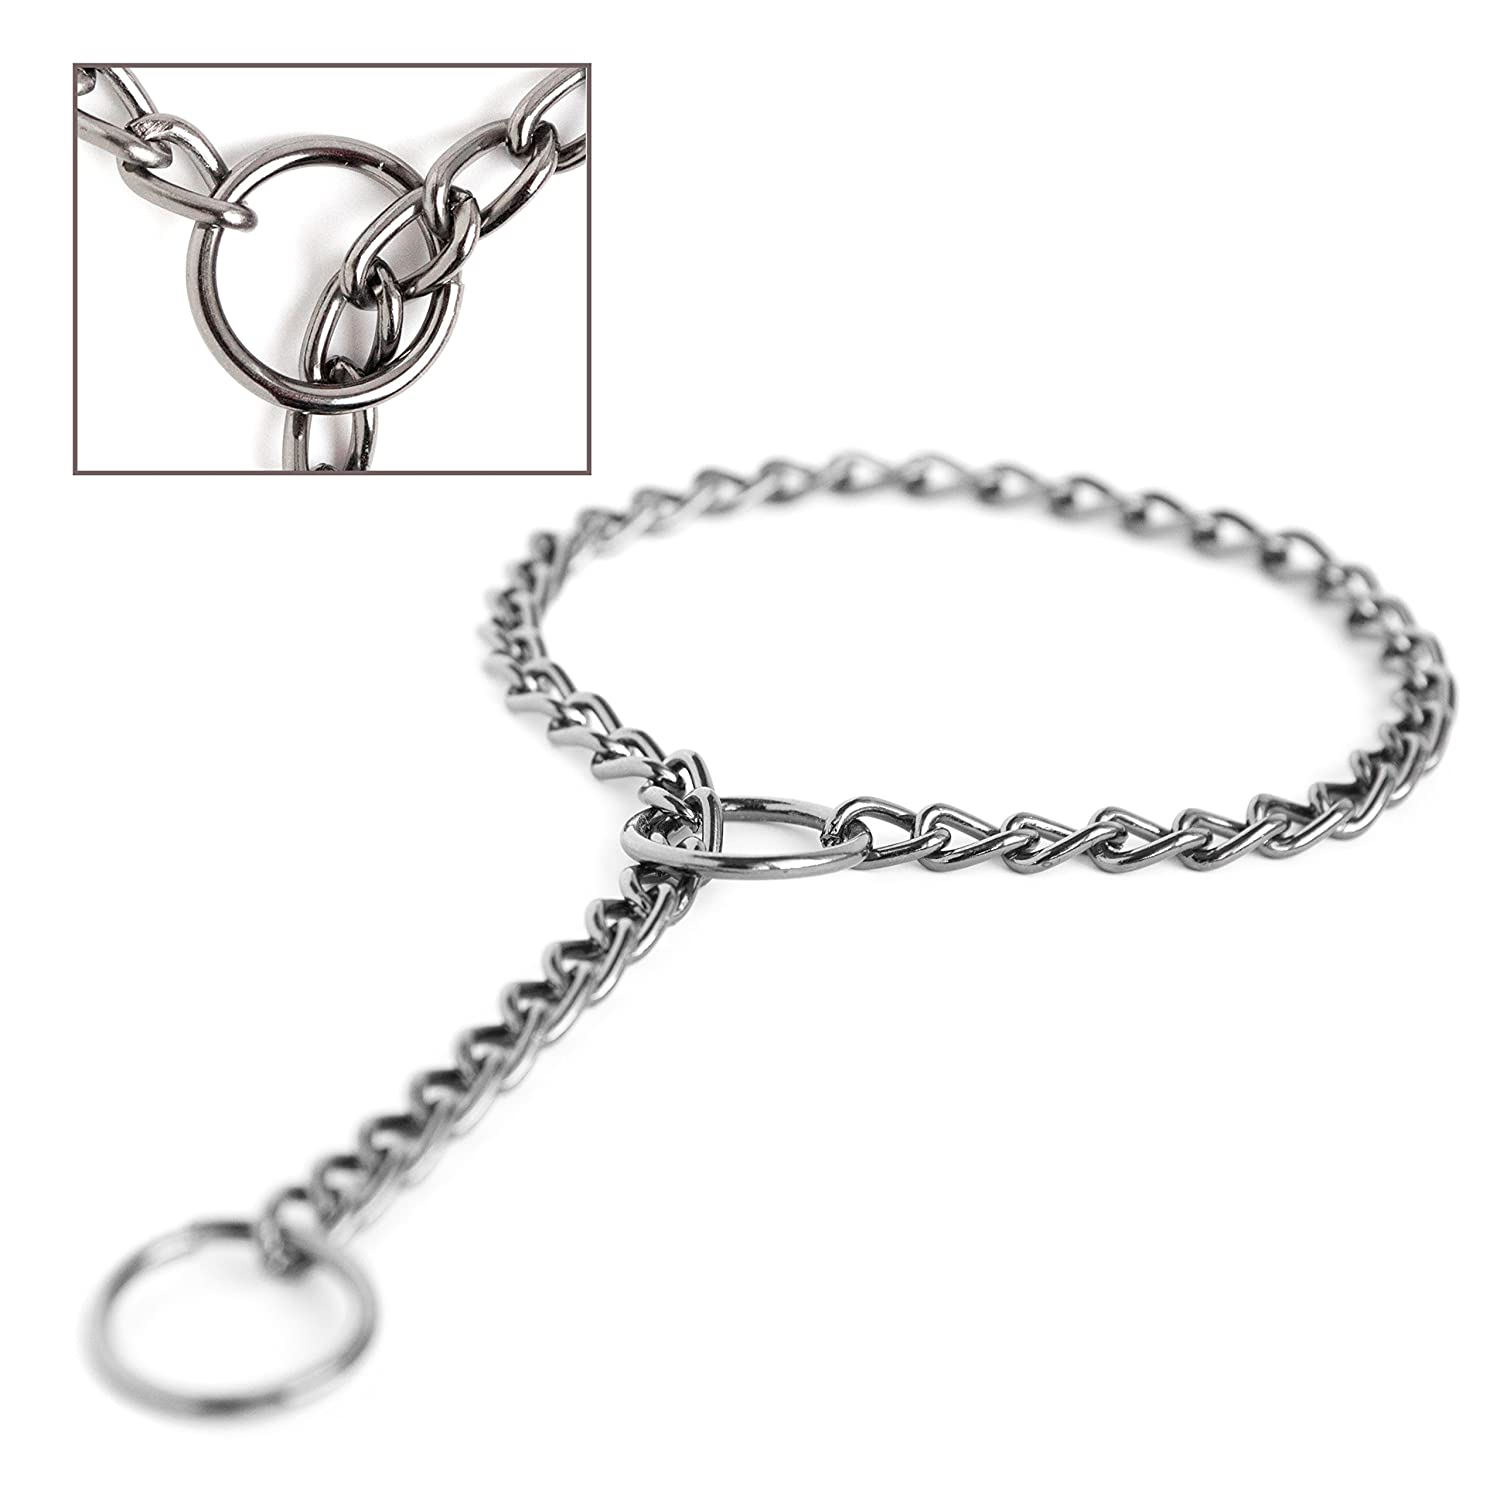 20 inch Mighty Paw Gun Metal Chain Slip Collar, Cinch Dog Collar, Choke Chain Metal Collar